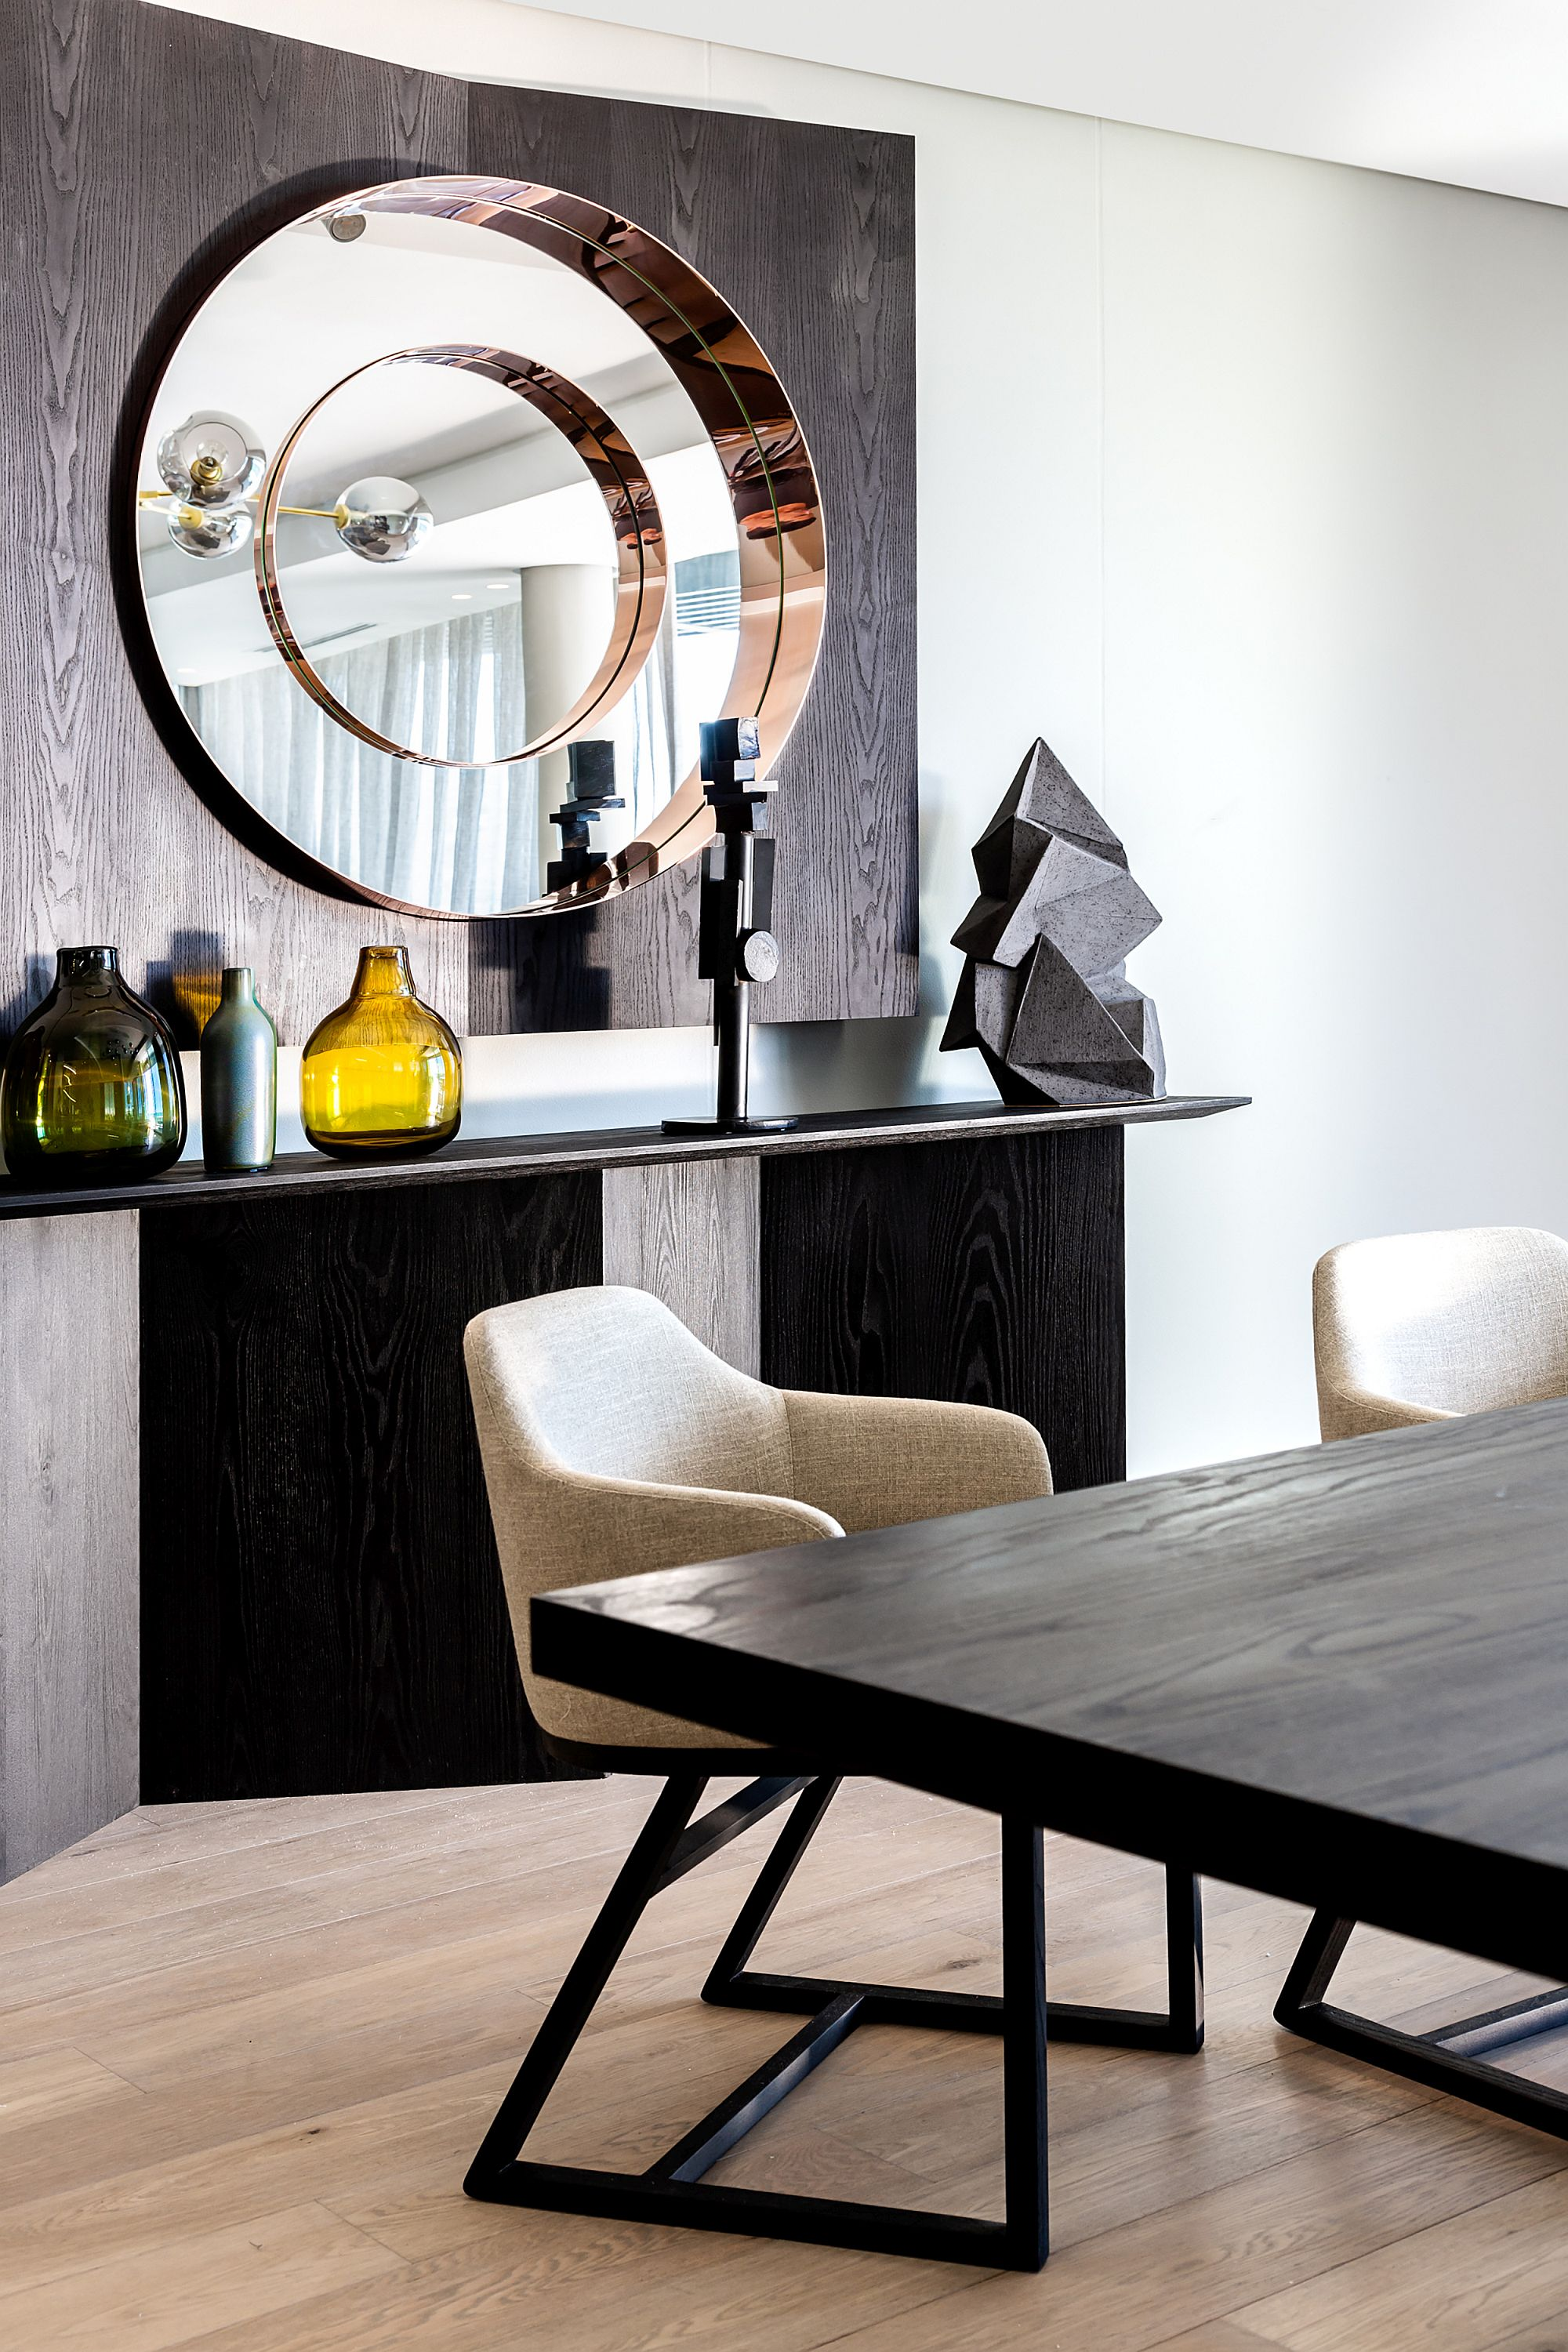 Port-Mirror-and-Tofu-dining-chairs-add-class-to-the-interior